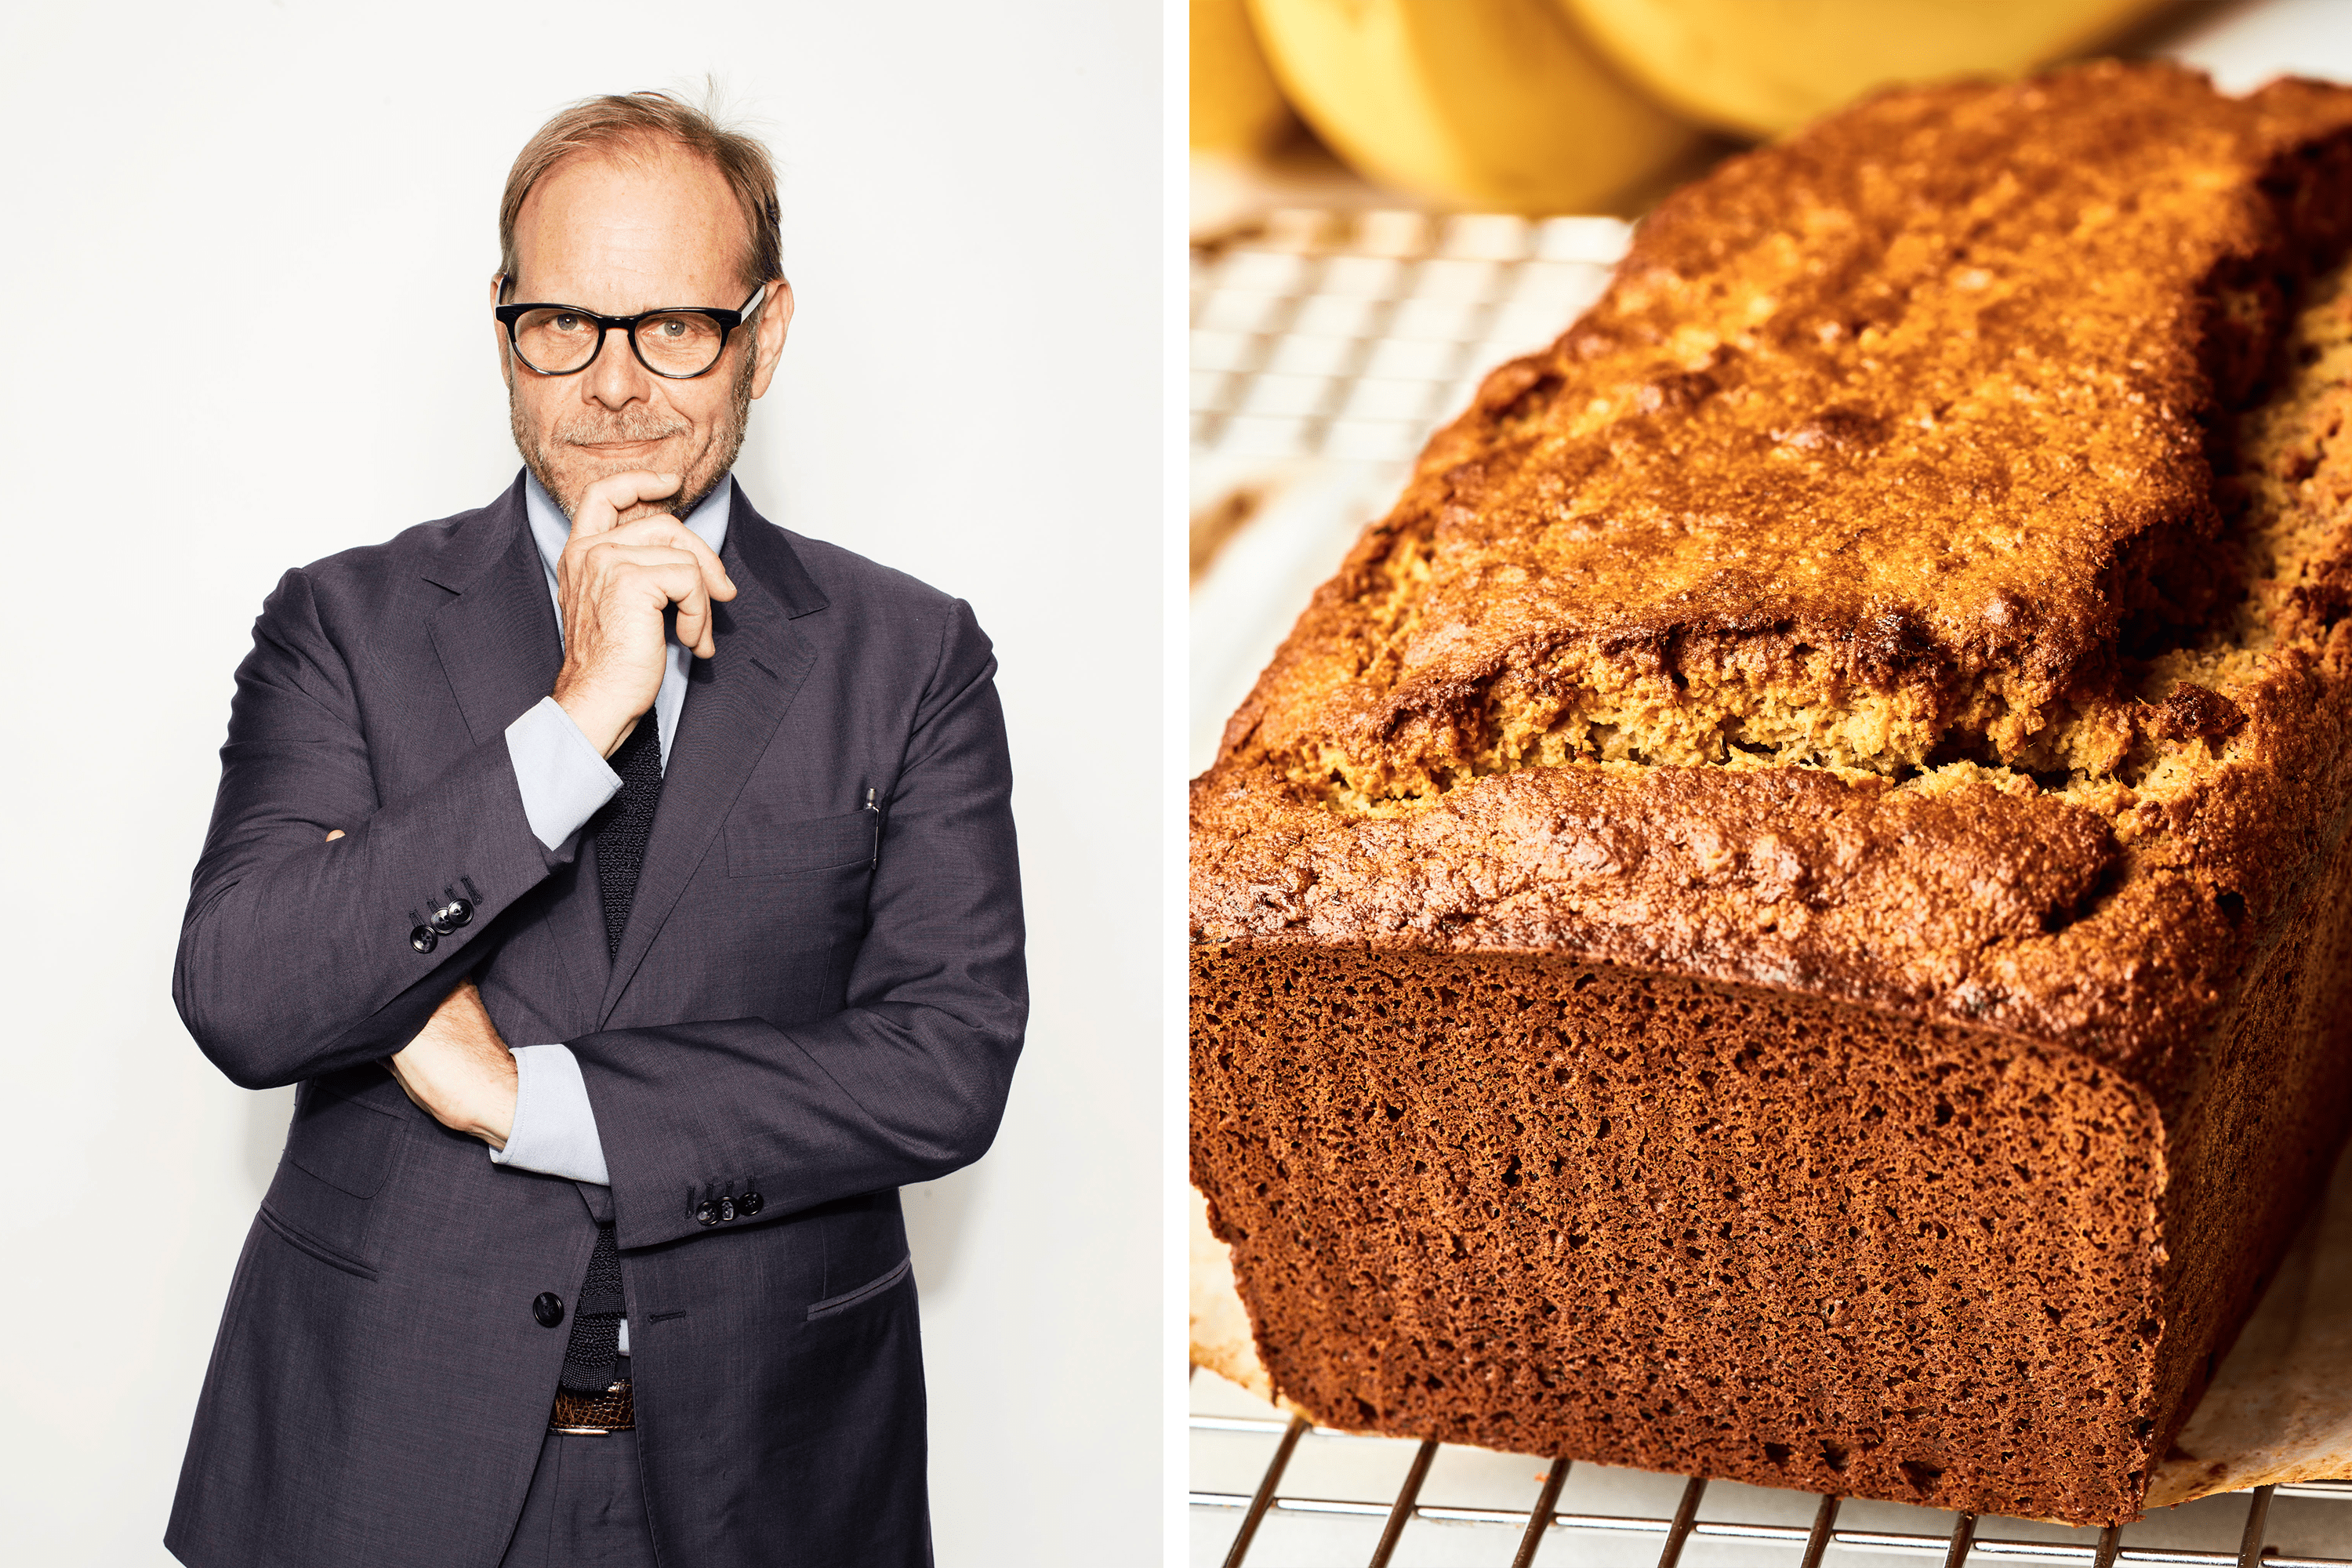 Alton Brown's One-Ingredient Trick for Great Banana Bread